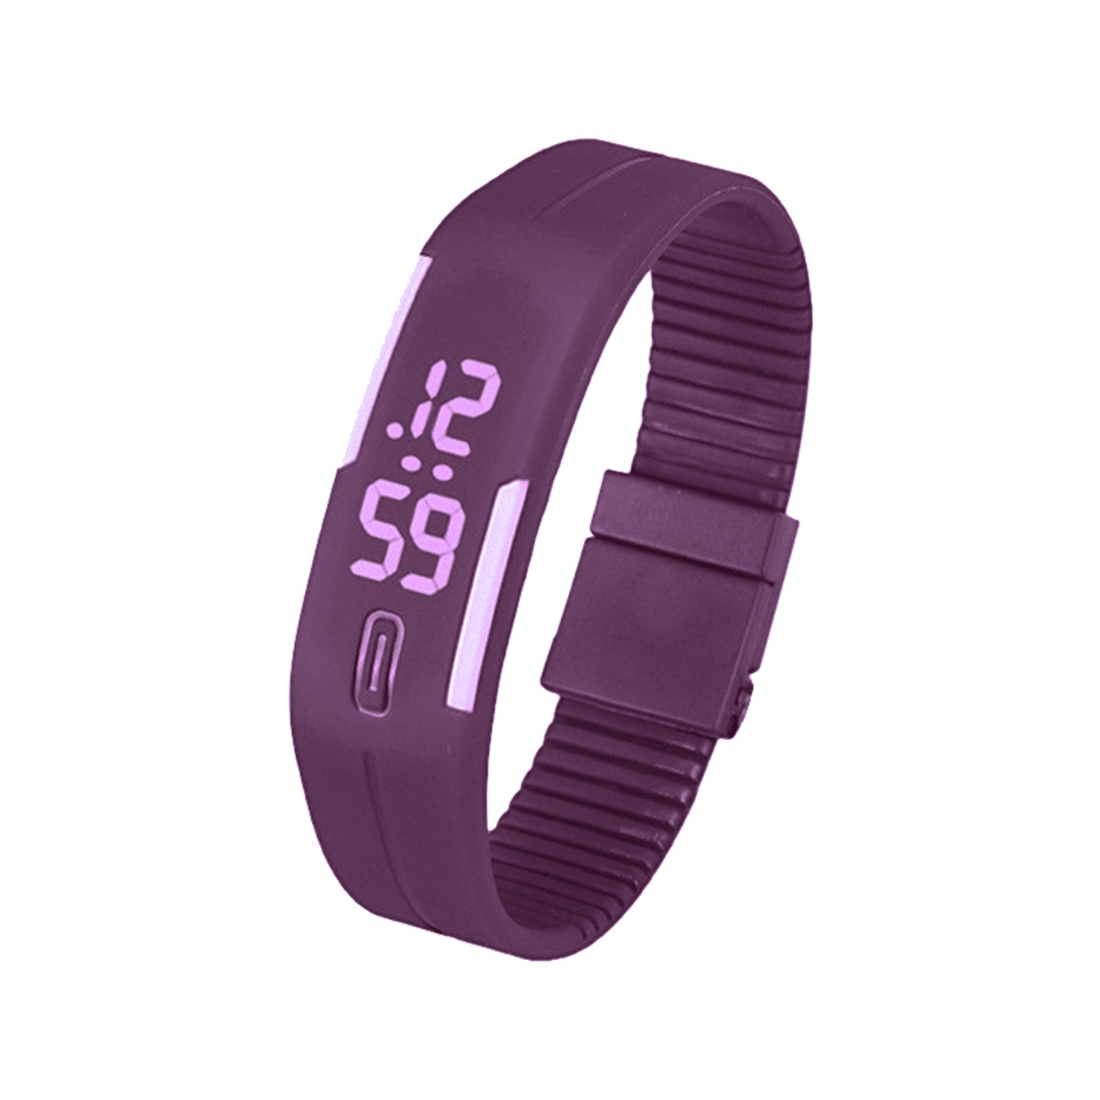 Sports Silicone Rubber White LED Digital Watch Bracelet Men Women Purple